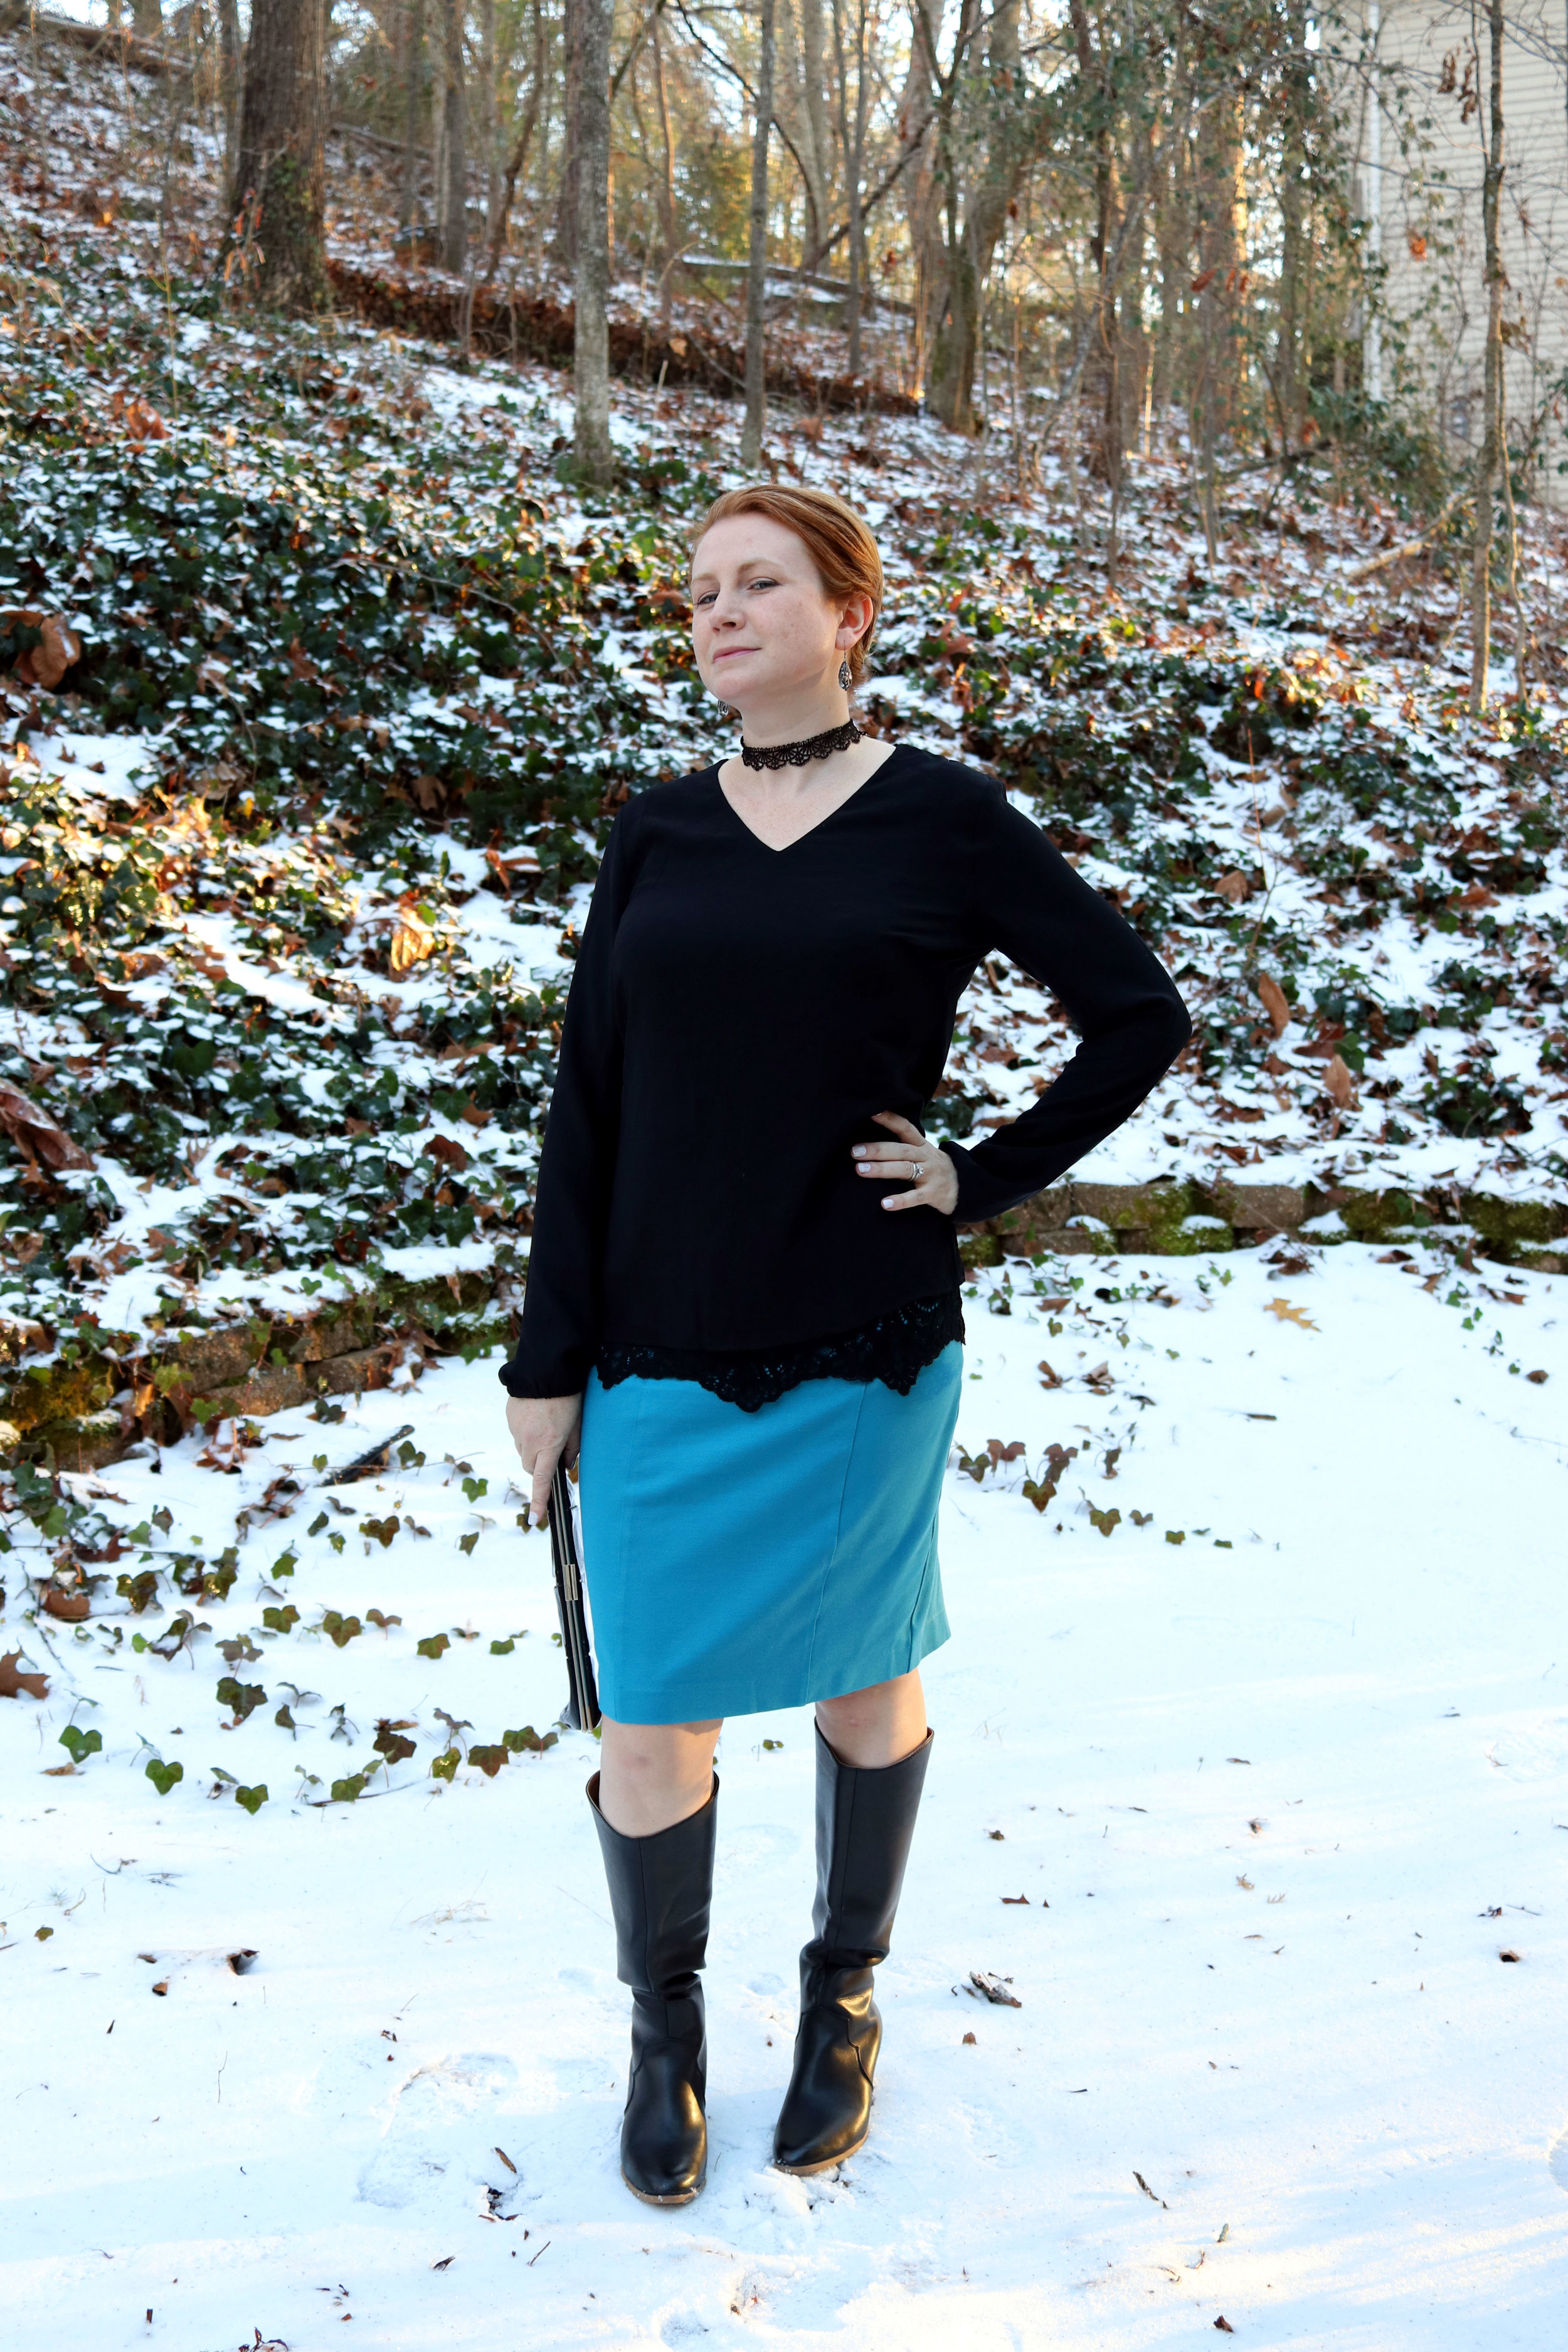 Sigourney skirt and Tempest Blouse from cabi clothing Fall 2016. Boots and choker from JustFab. Clutch older.